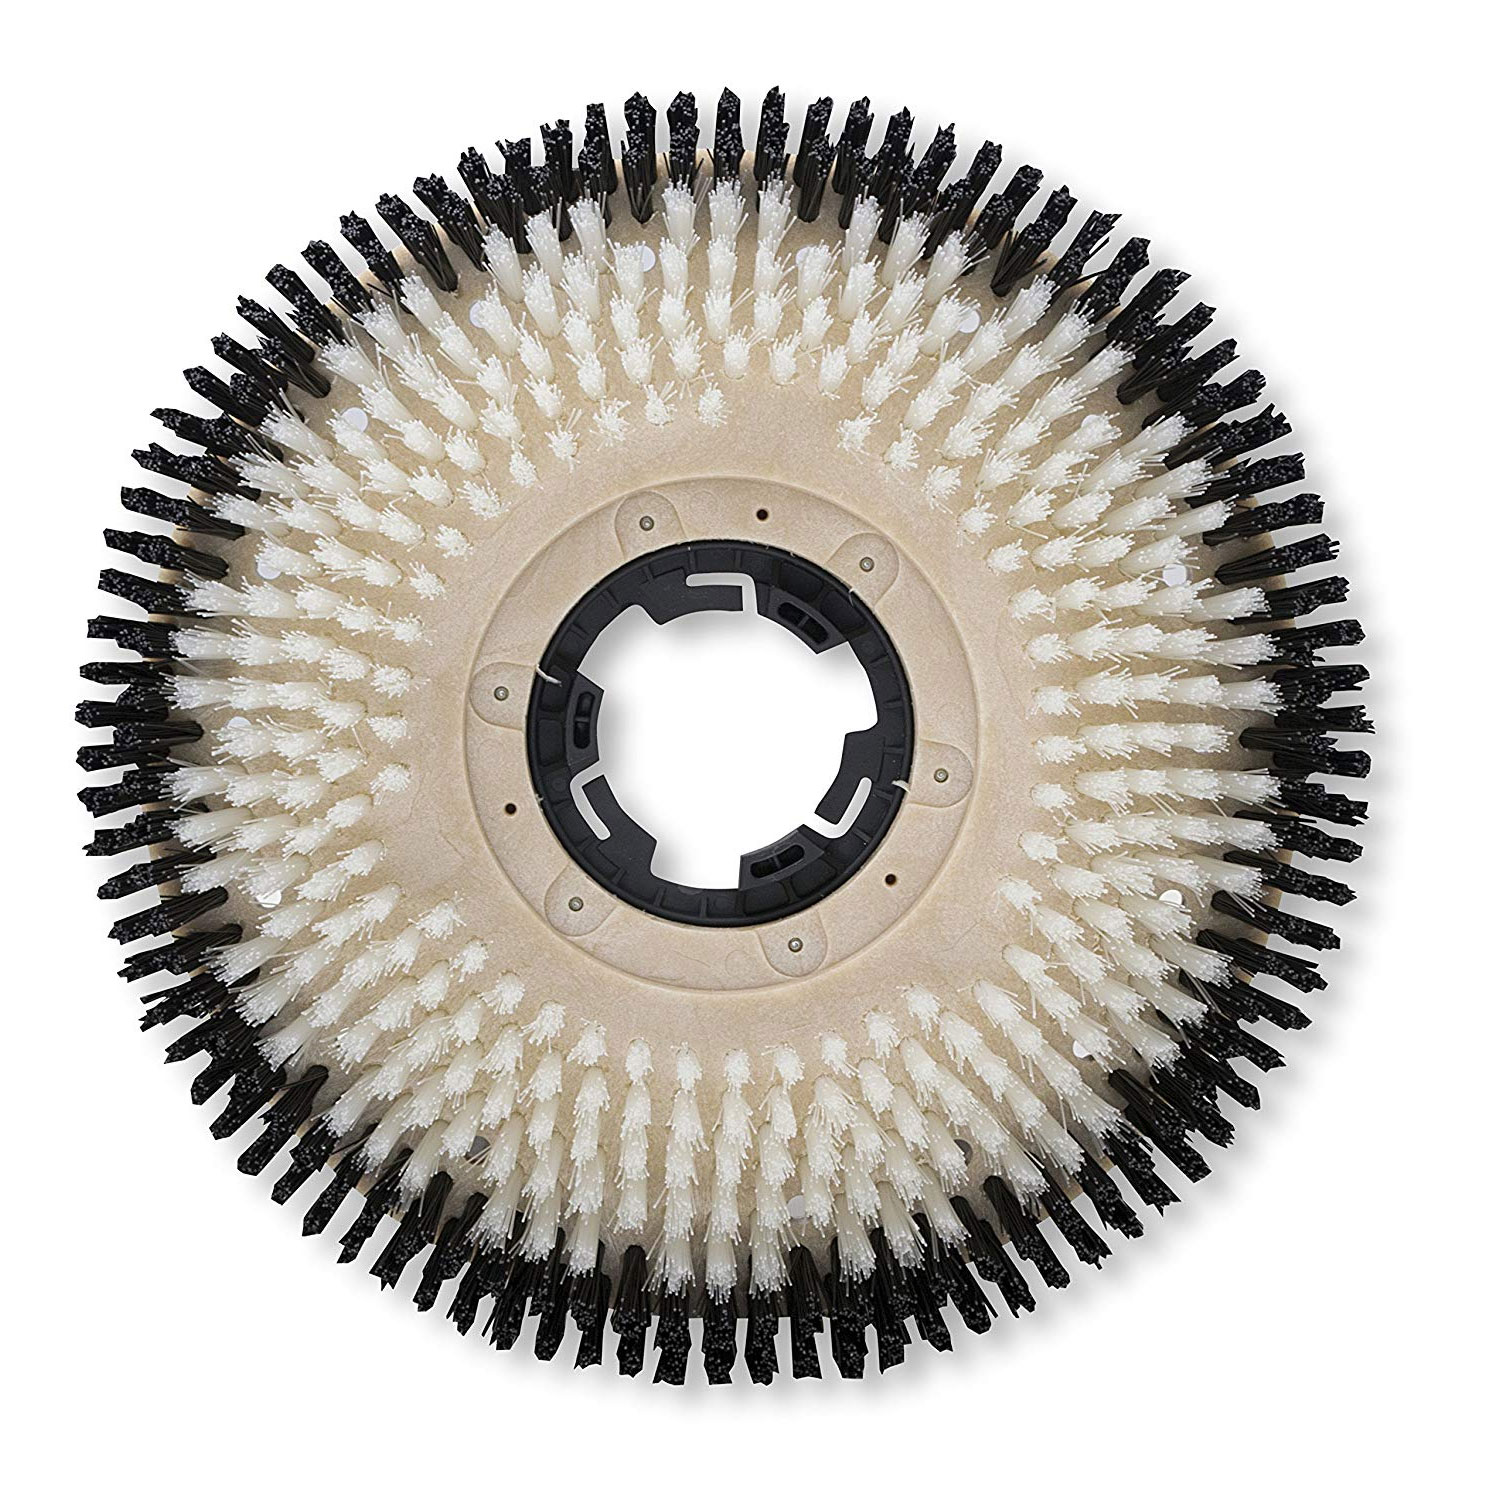 Malish 812915NP Nylon 15inch Tuff-Block Carpet Brush with Clutch Plate